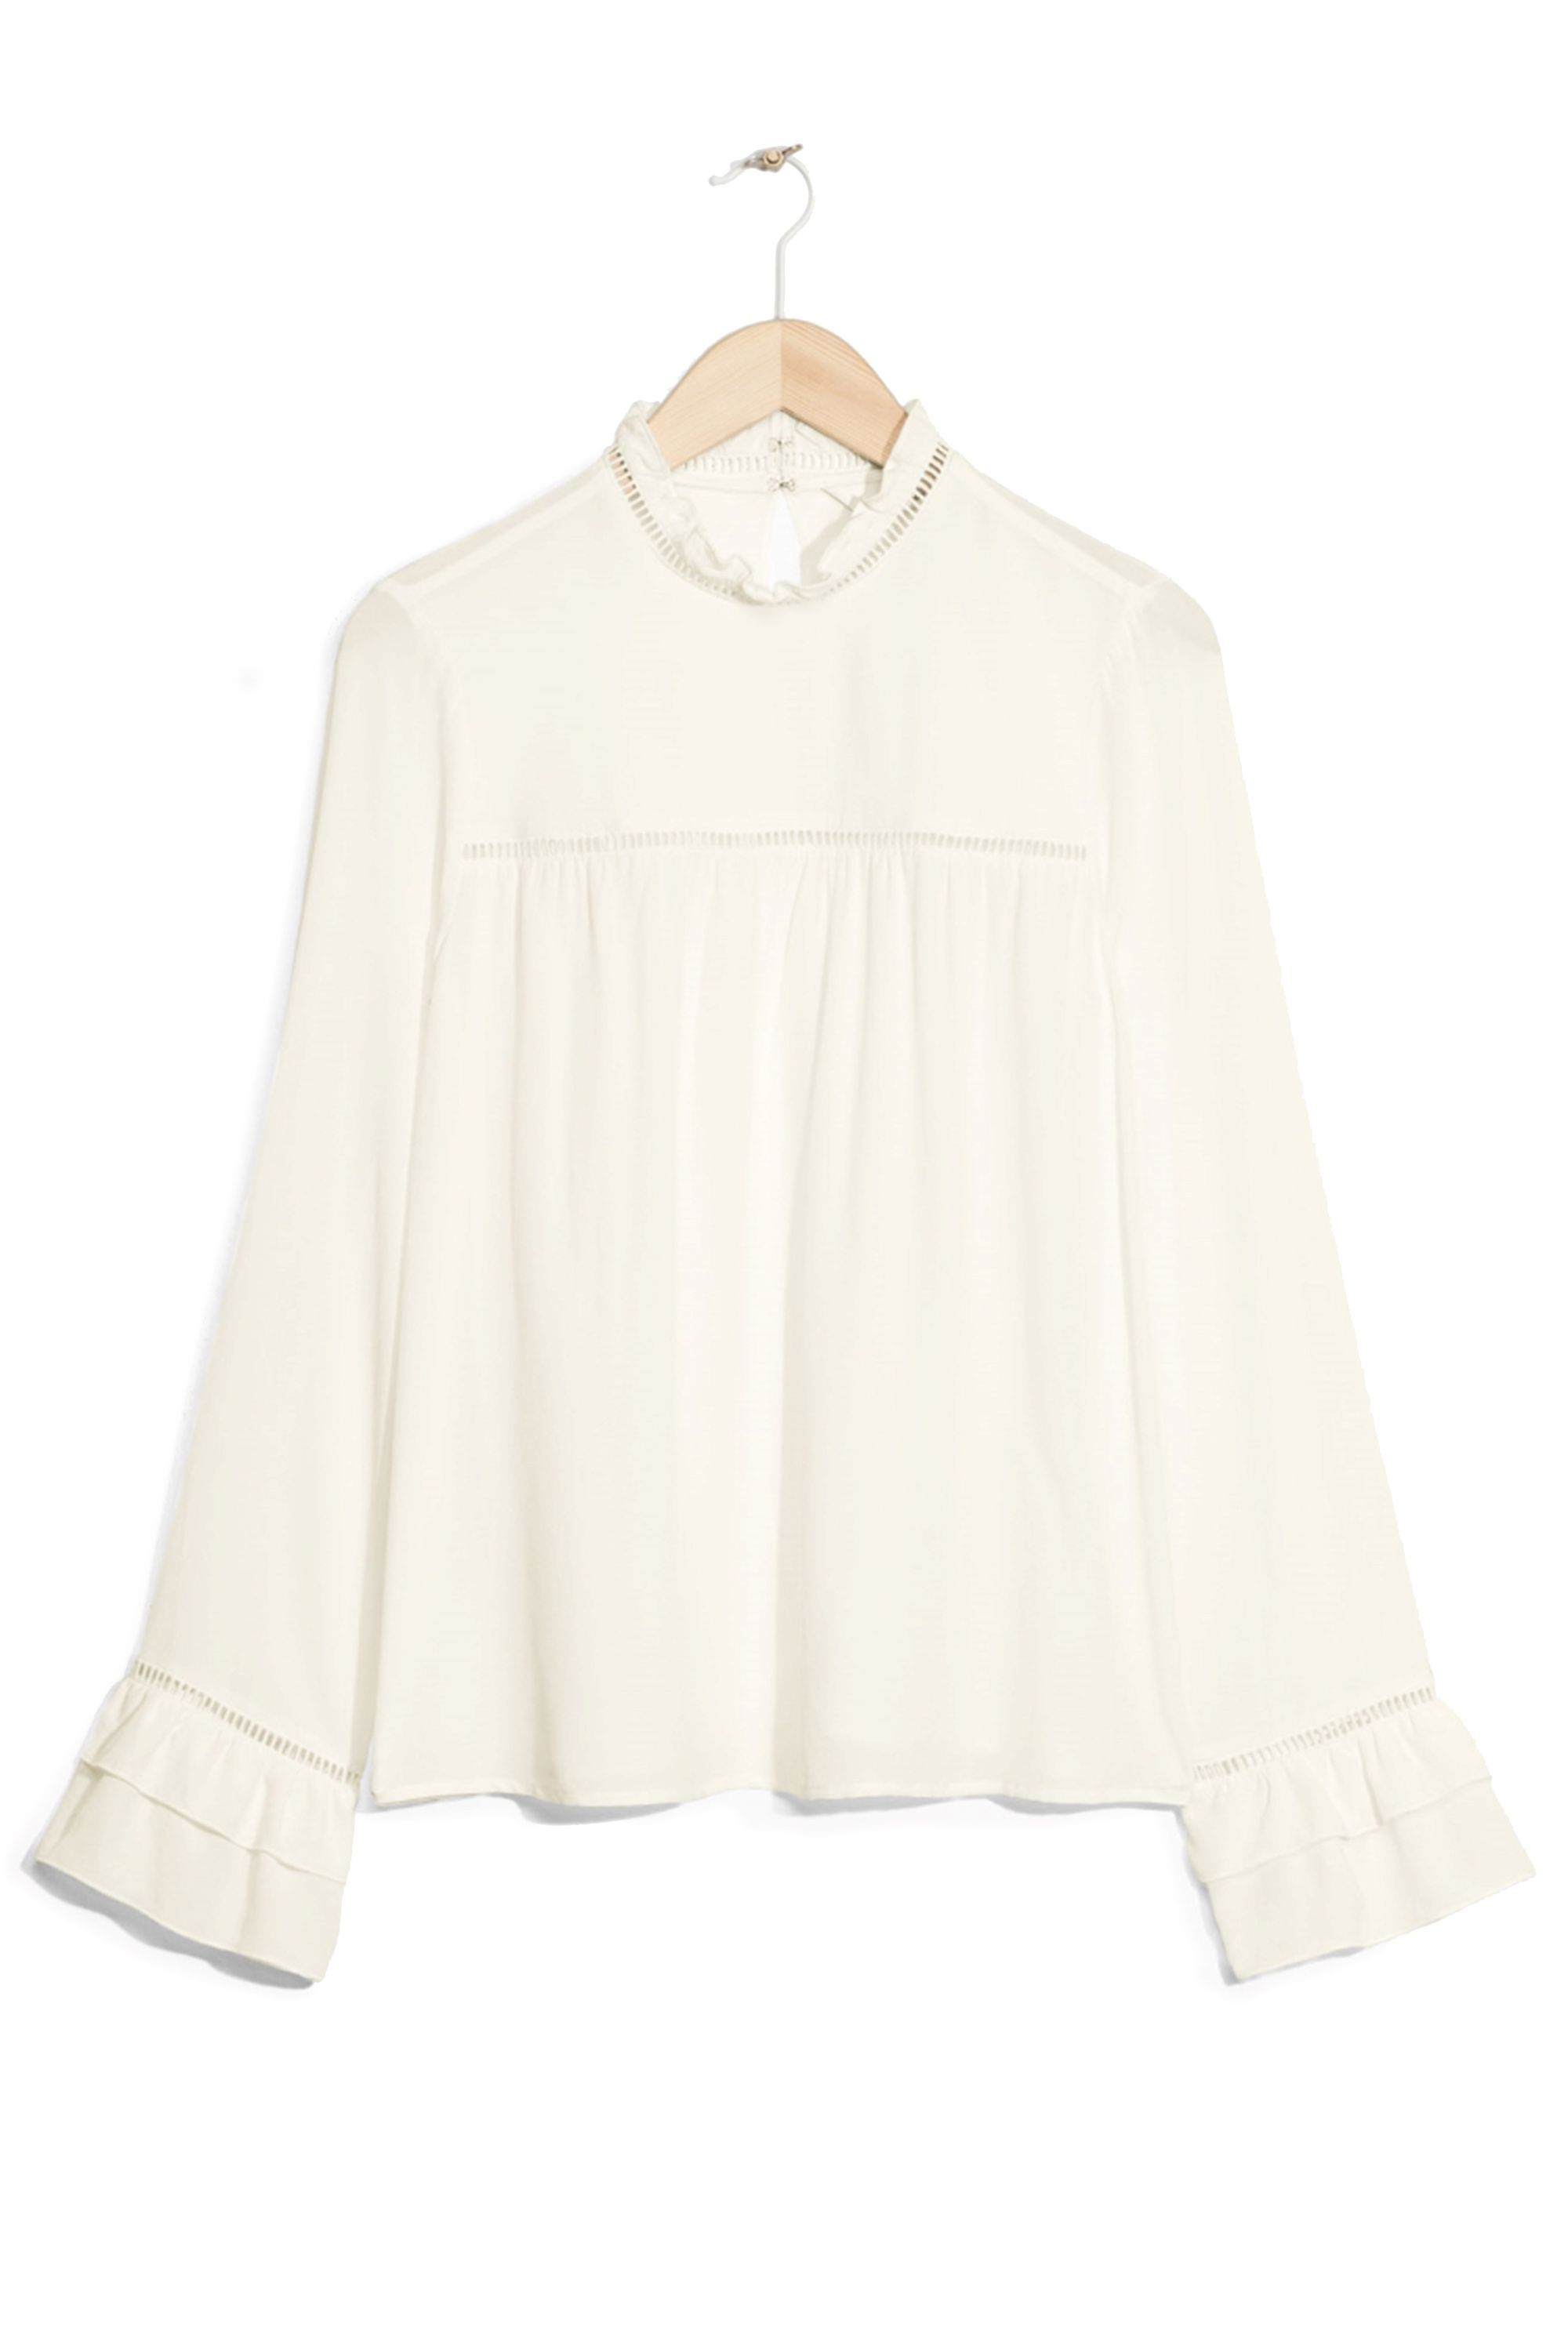 """<p>& Other Stories Frilled Blouse, $65; <a href=""""  http://www.stories.com/us/Ready-to-wear/Tops/Frilled_Blouse/582942-104541390.1"""" data-tracking-id=""""recirc-text-link"""">stories.com</a></p>"""